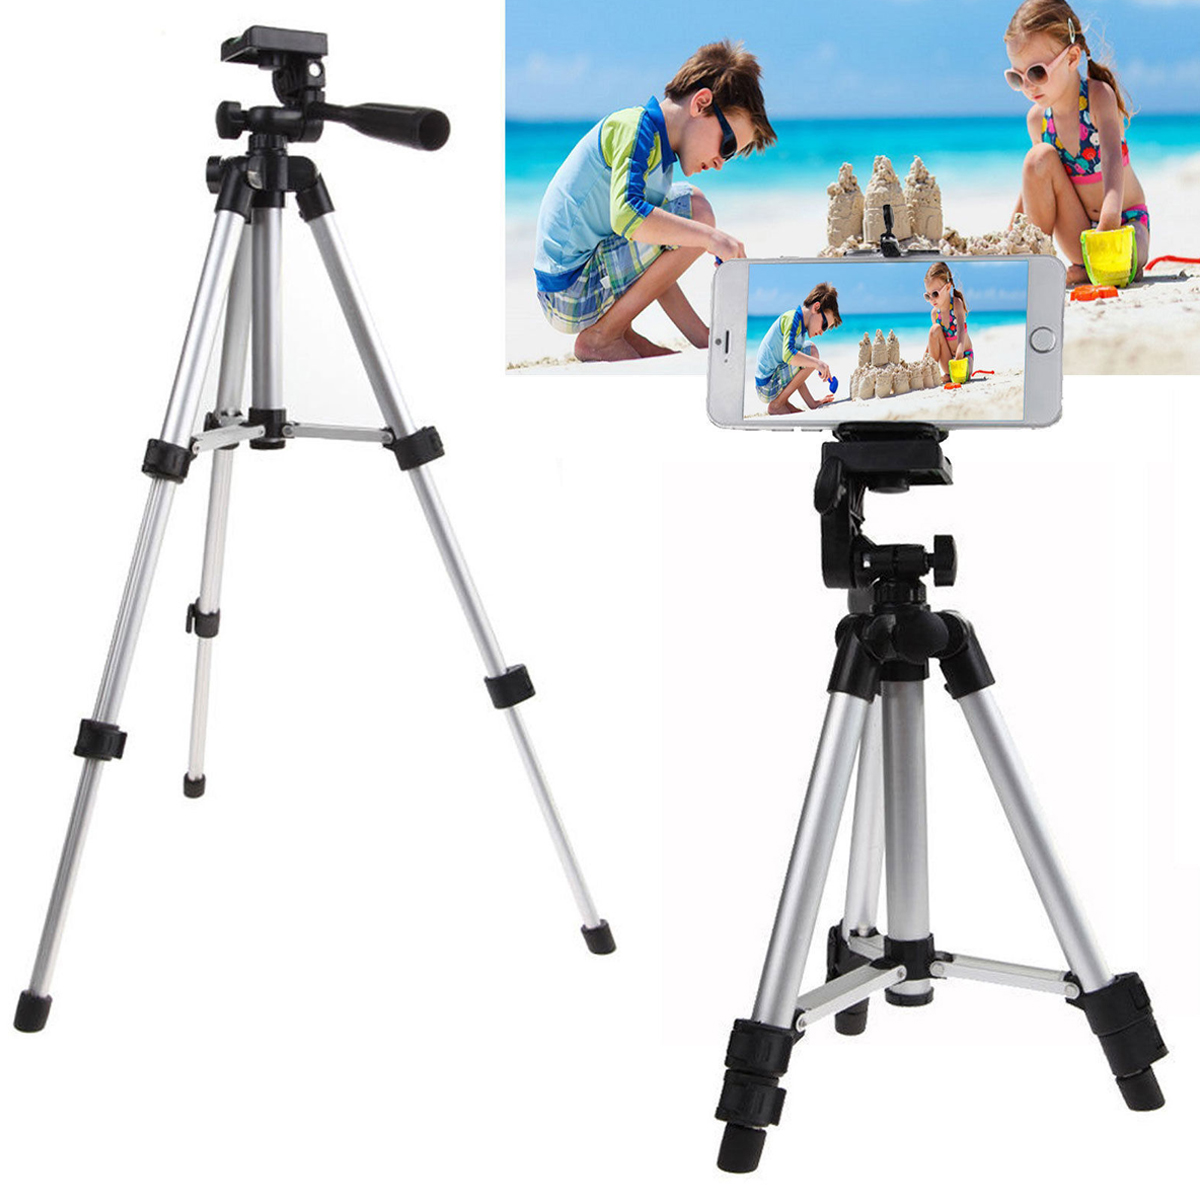 Phone Tripod Tsv Portable And Adjustable Camera Stand Holder For